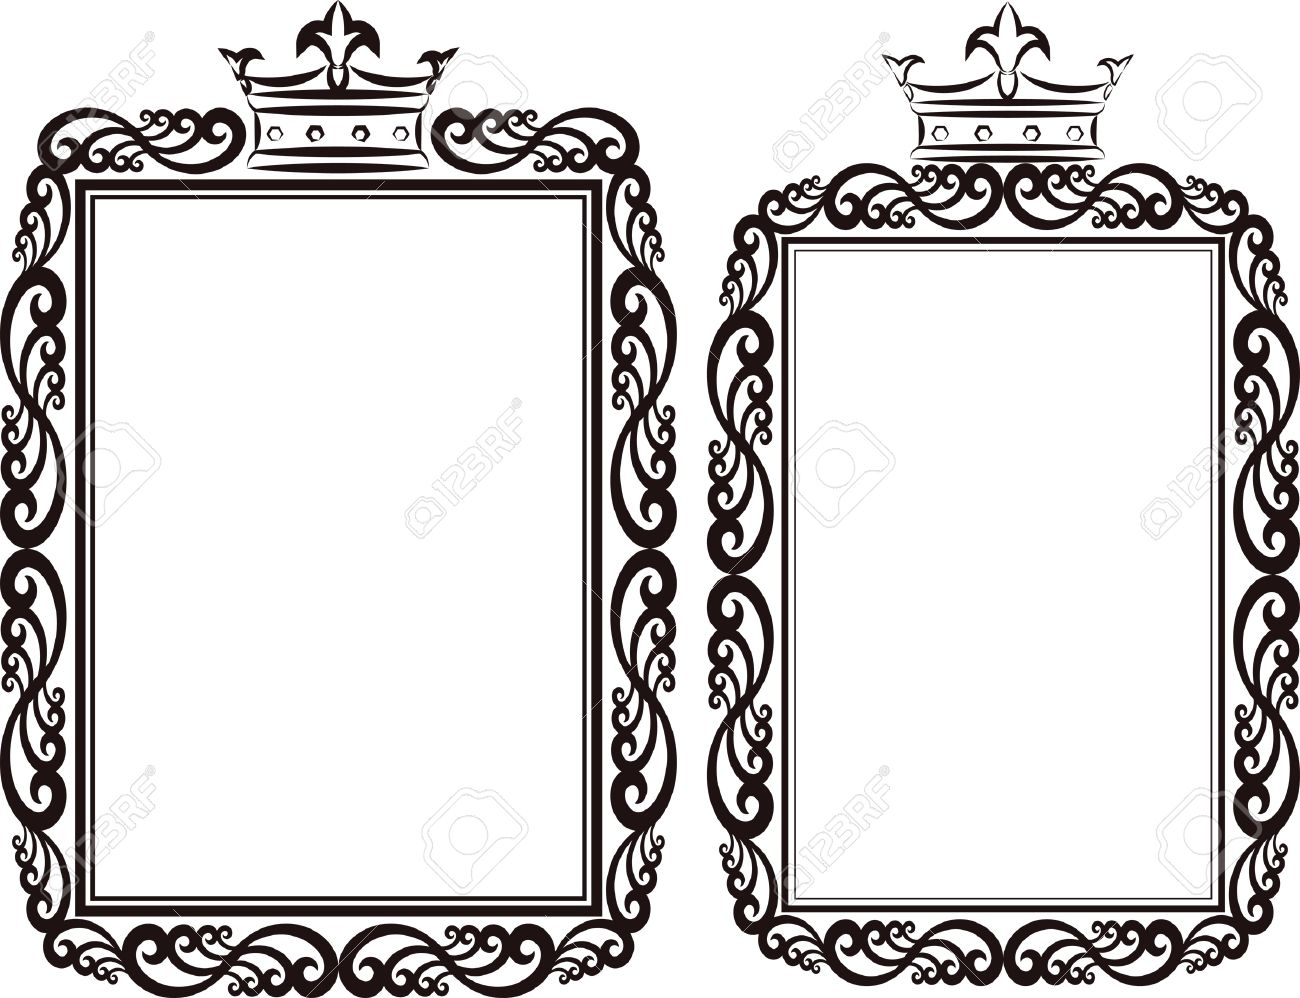 royal border clip art illustration royalty free cliparts vectors rh 123rf com clip art borders free clipart border scroll